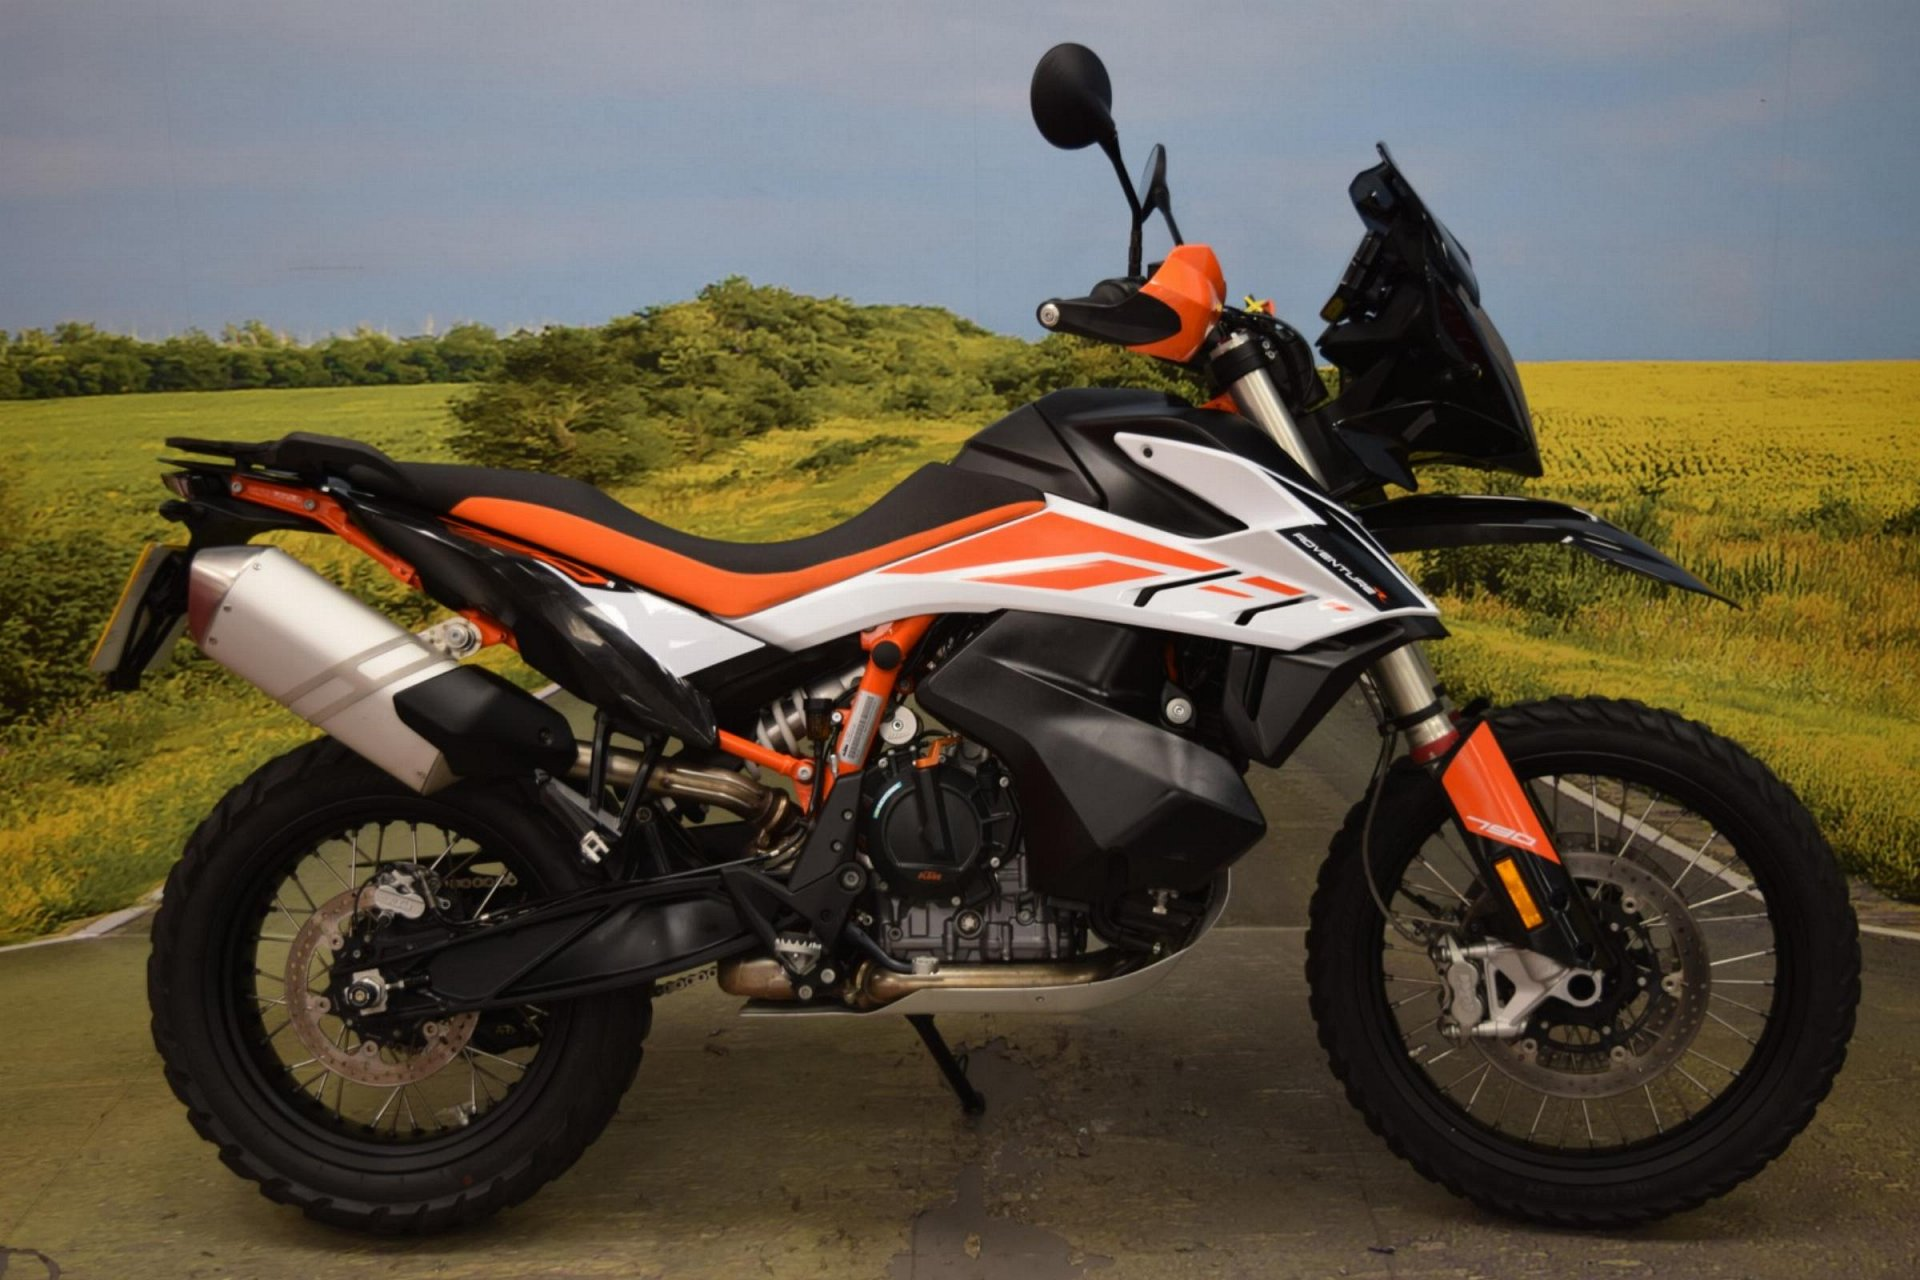 2019 KTM 790 Adventure R for sale in Staffordshire